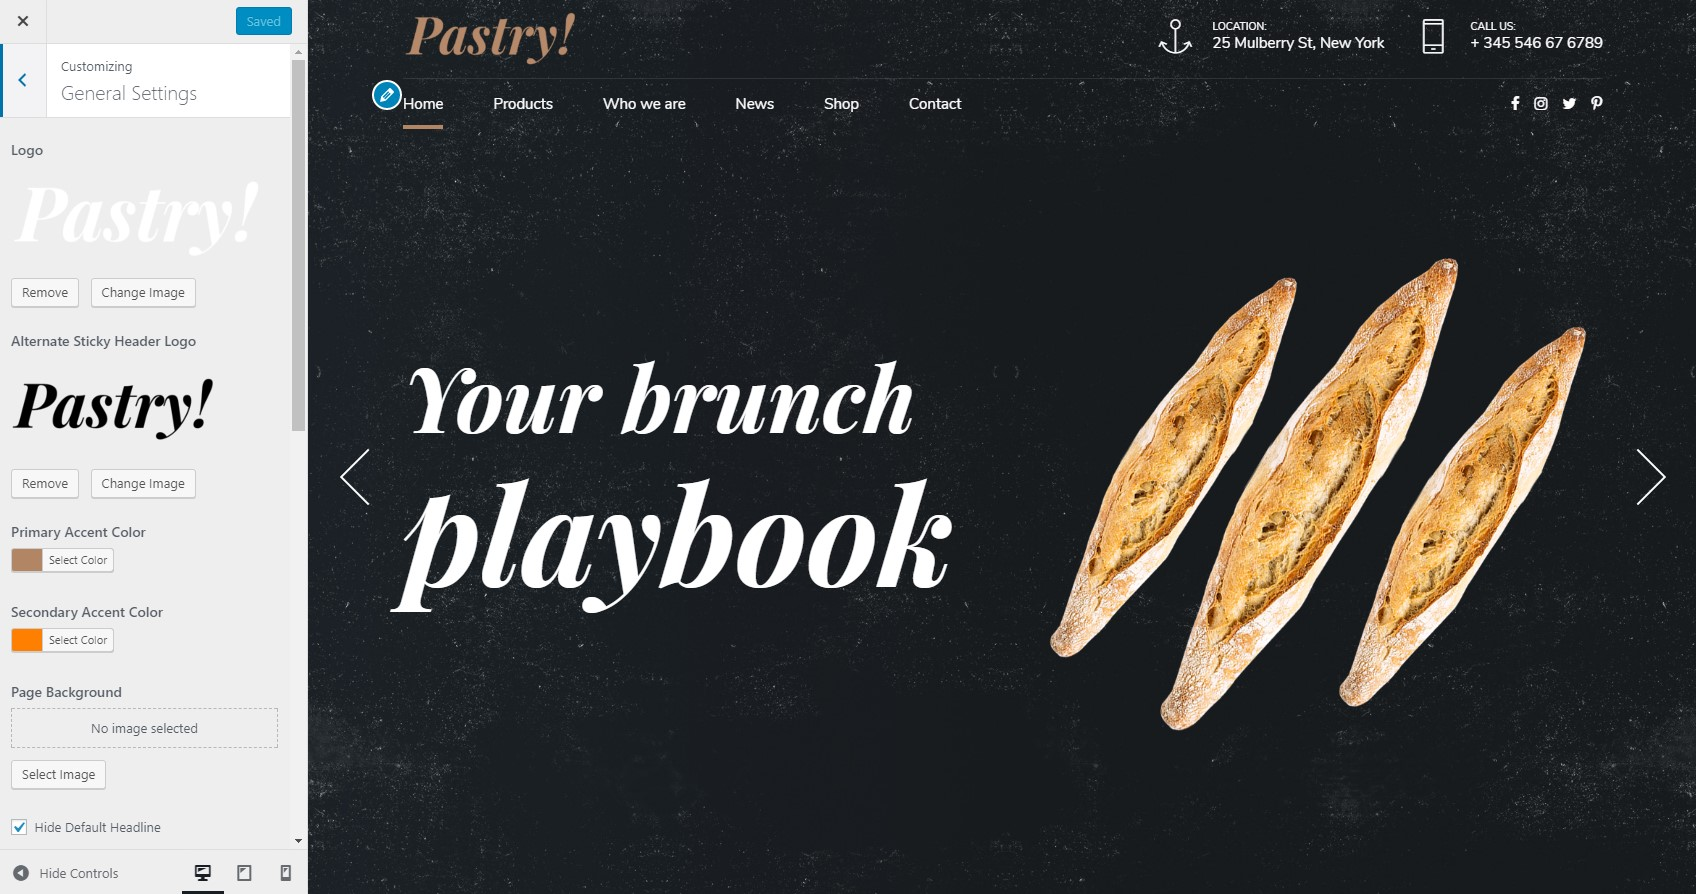 http://documentation.bold-themes.com/pastry-love/wp-content/uploads/sites/22/2017/08/general-settings.jpg